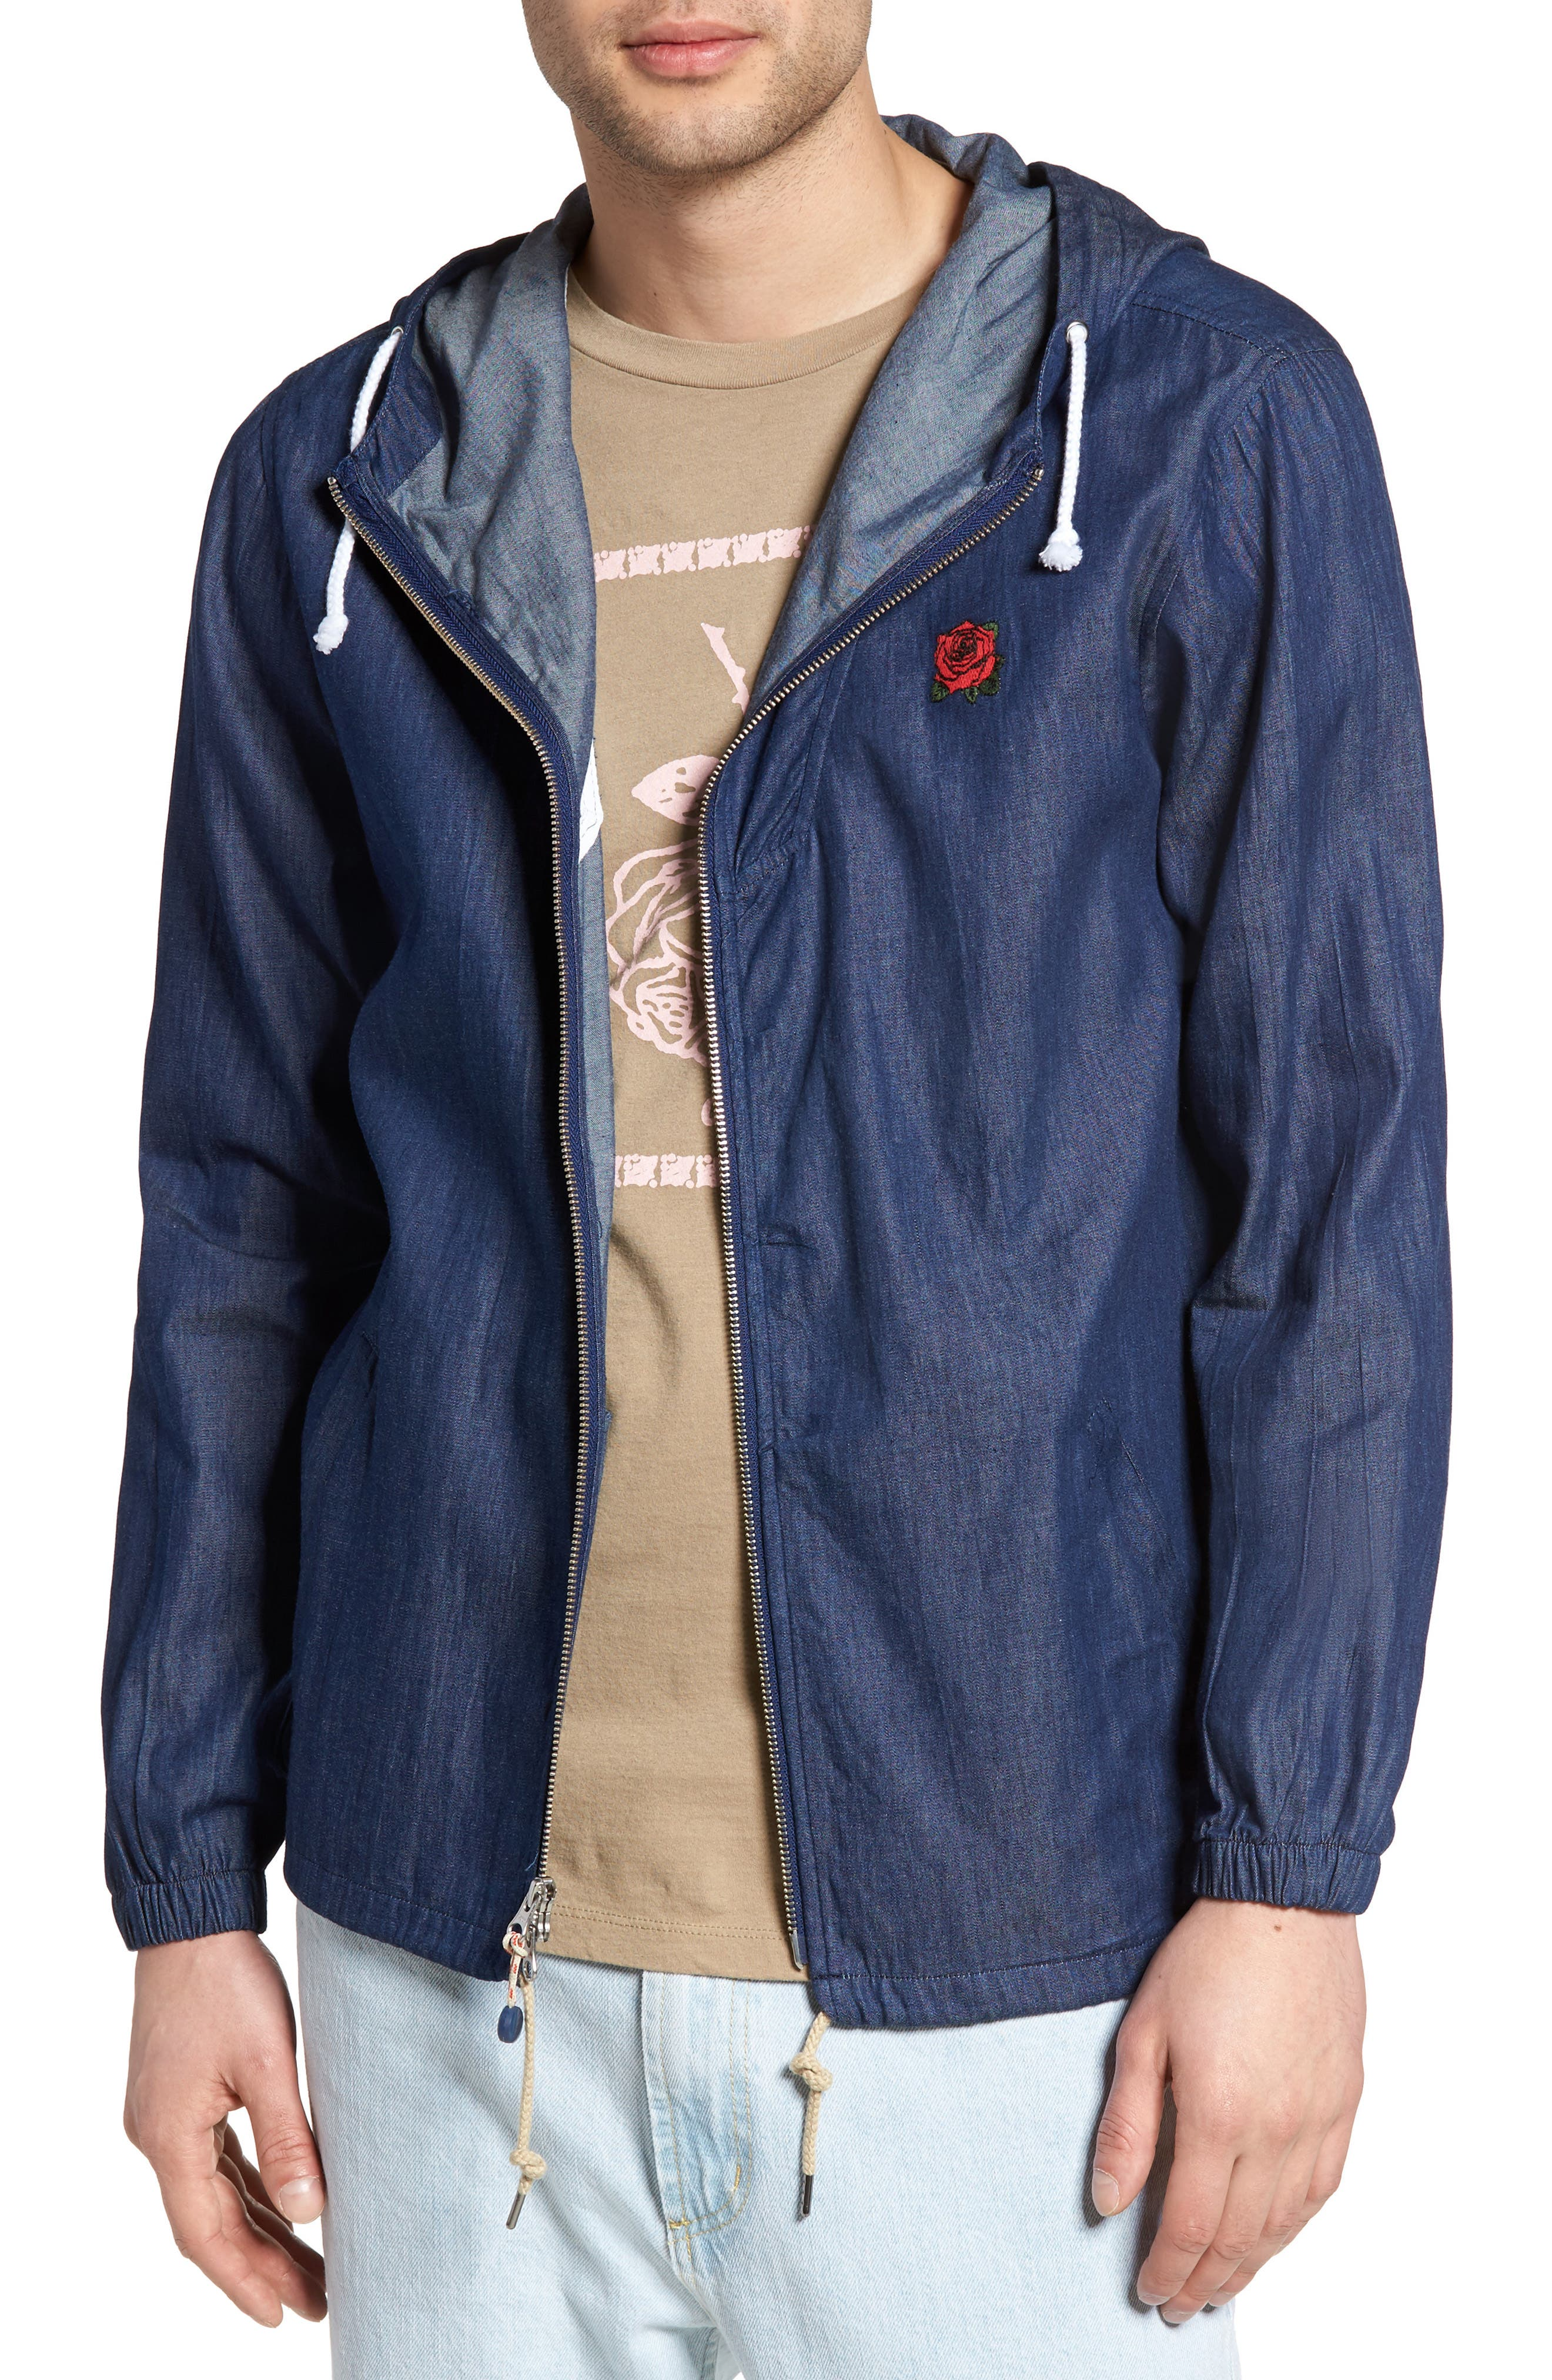 Flower District Hooded Zip Denim Jacket,                             Main thumbnail 1, color,                             409